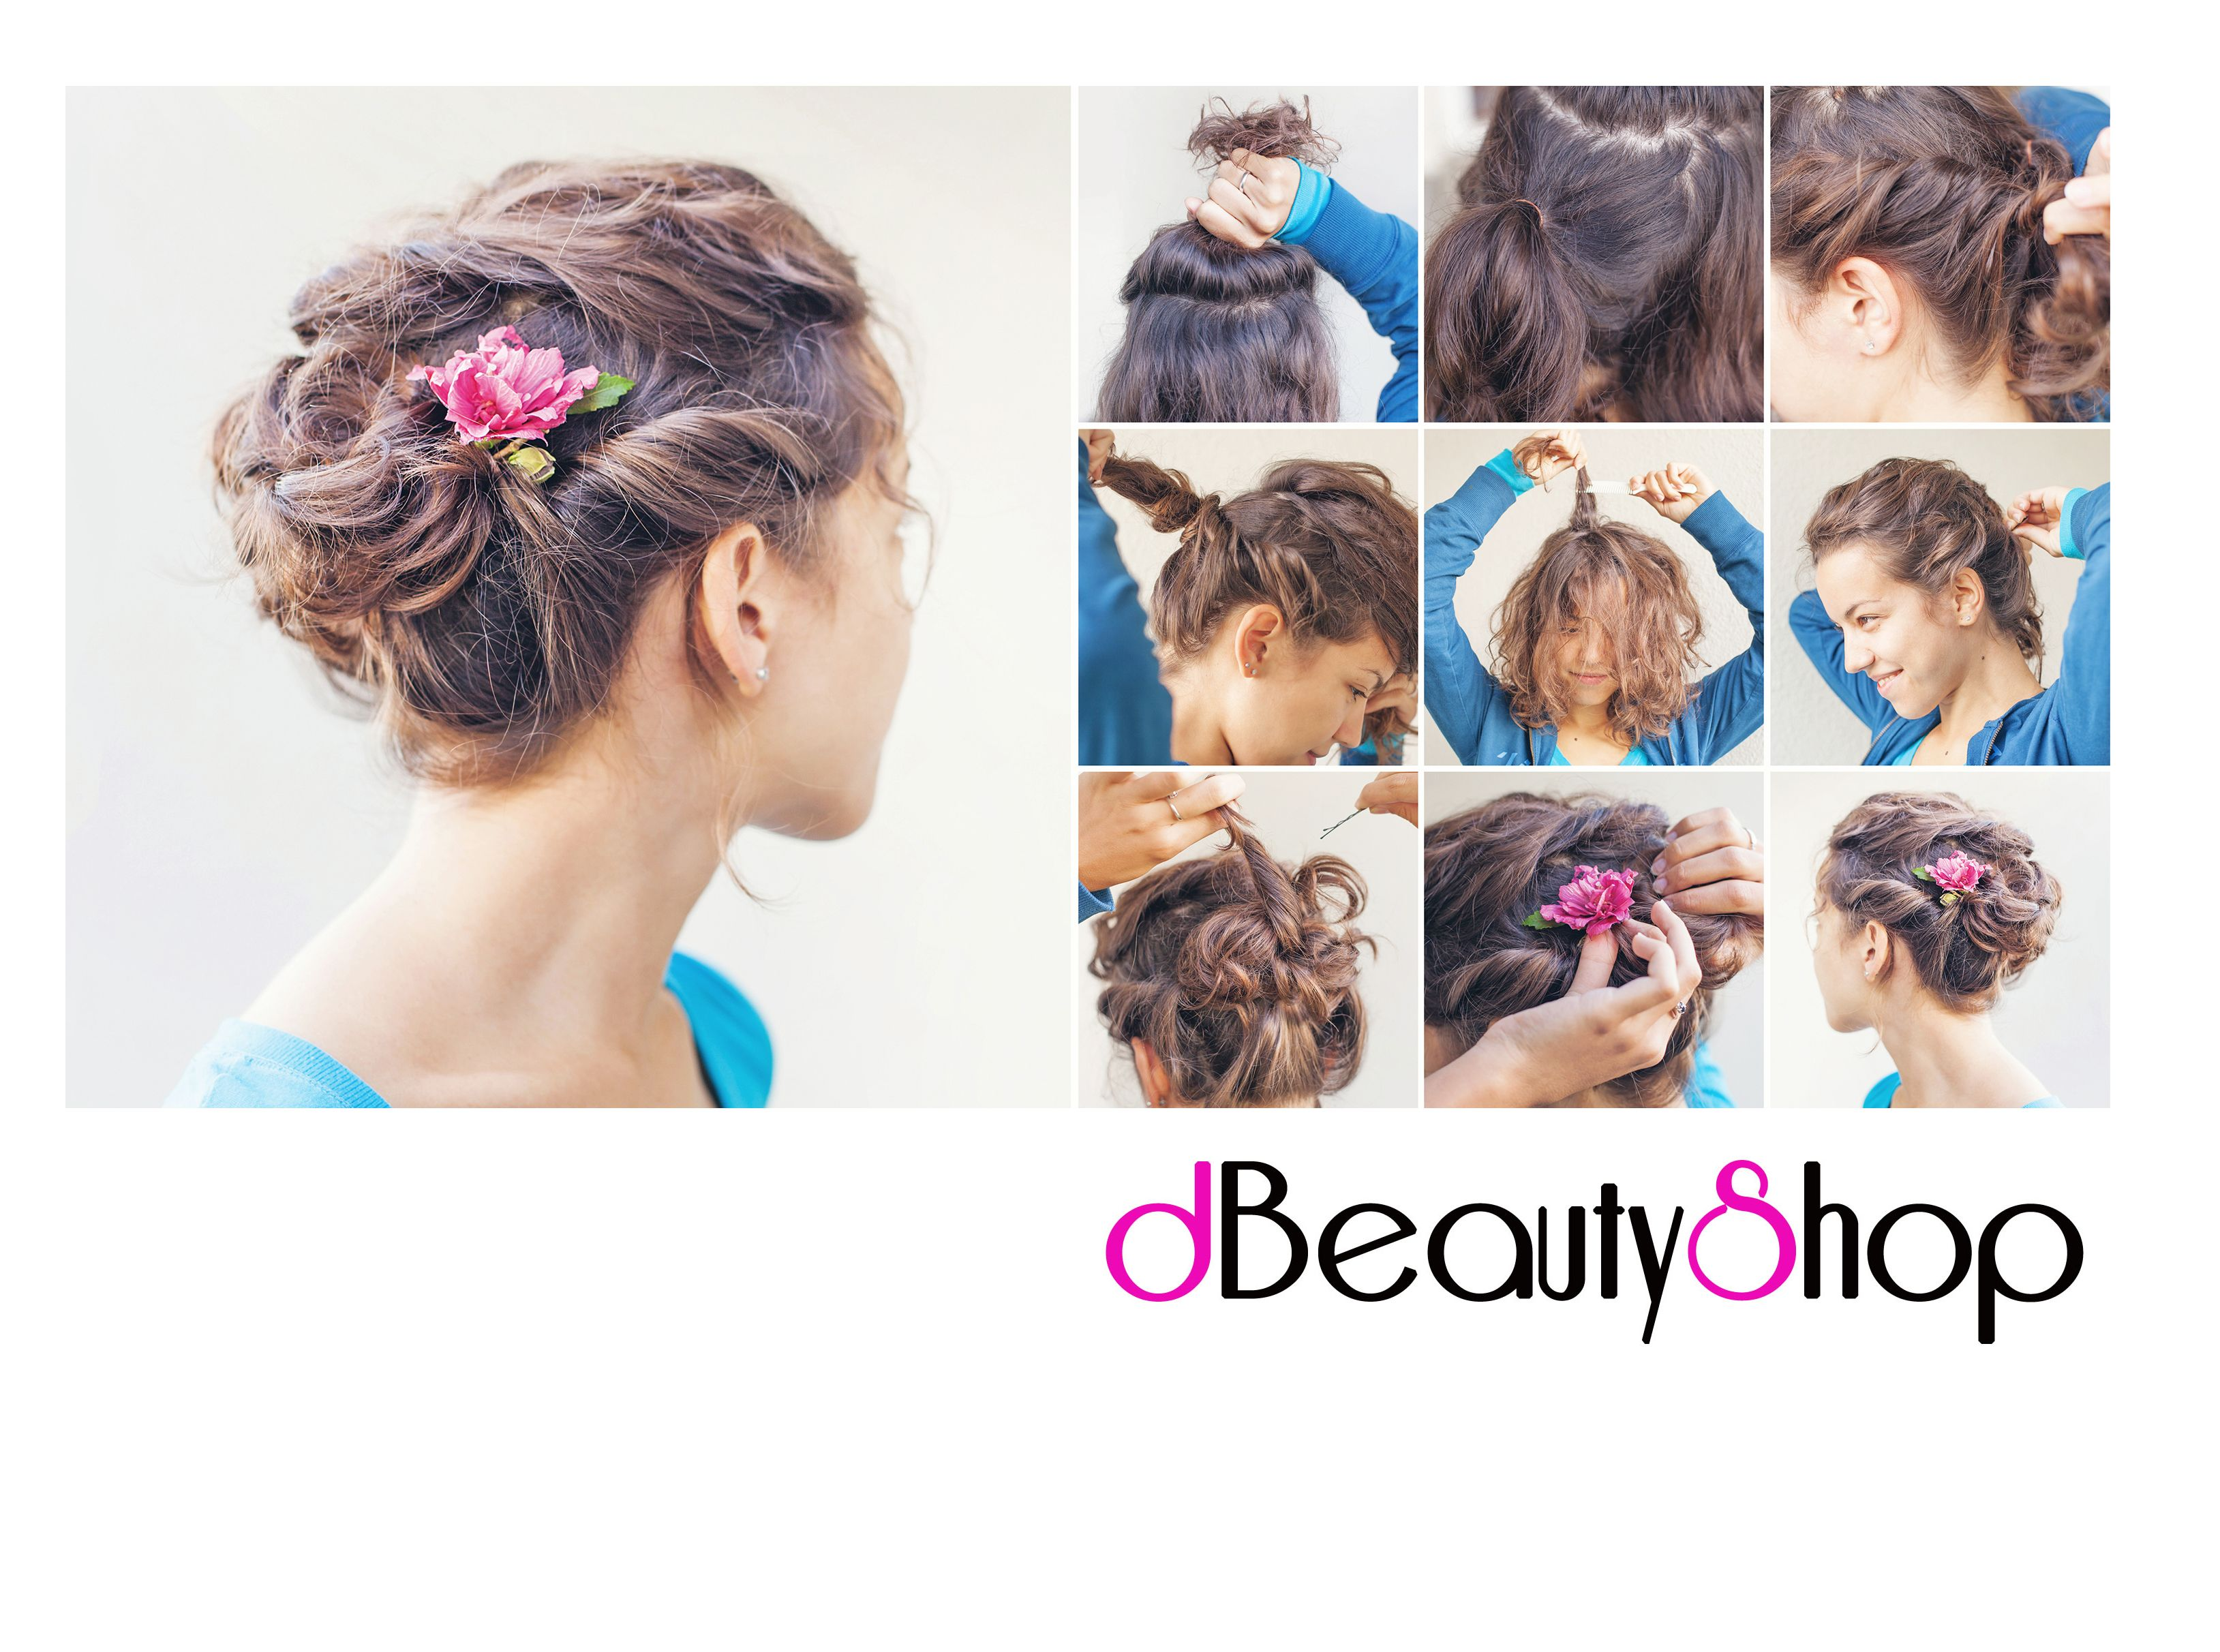 How to do a great upstyle hair style looks super for a prom